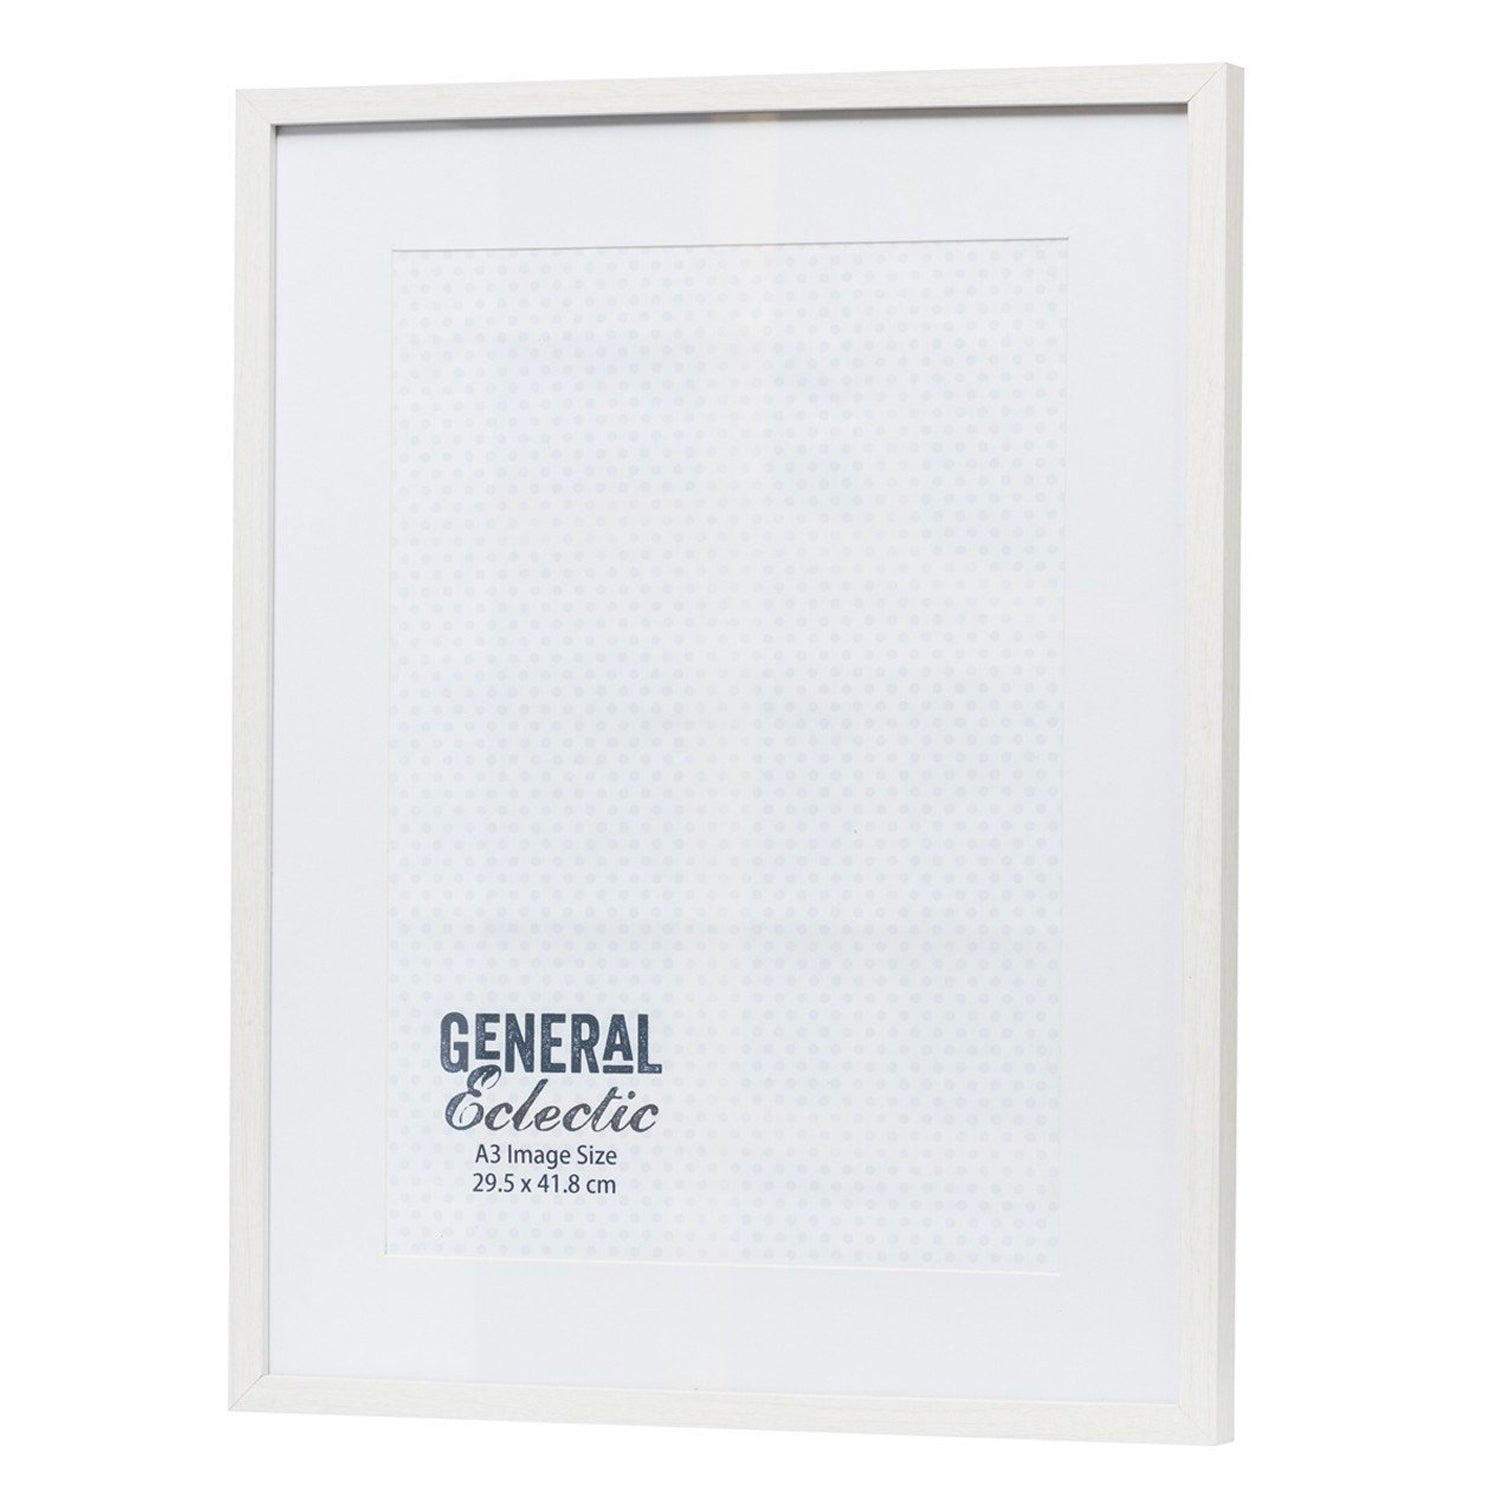 General Eclectic - Print Frame - The Furniture Store & The Bed Shop